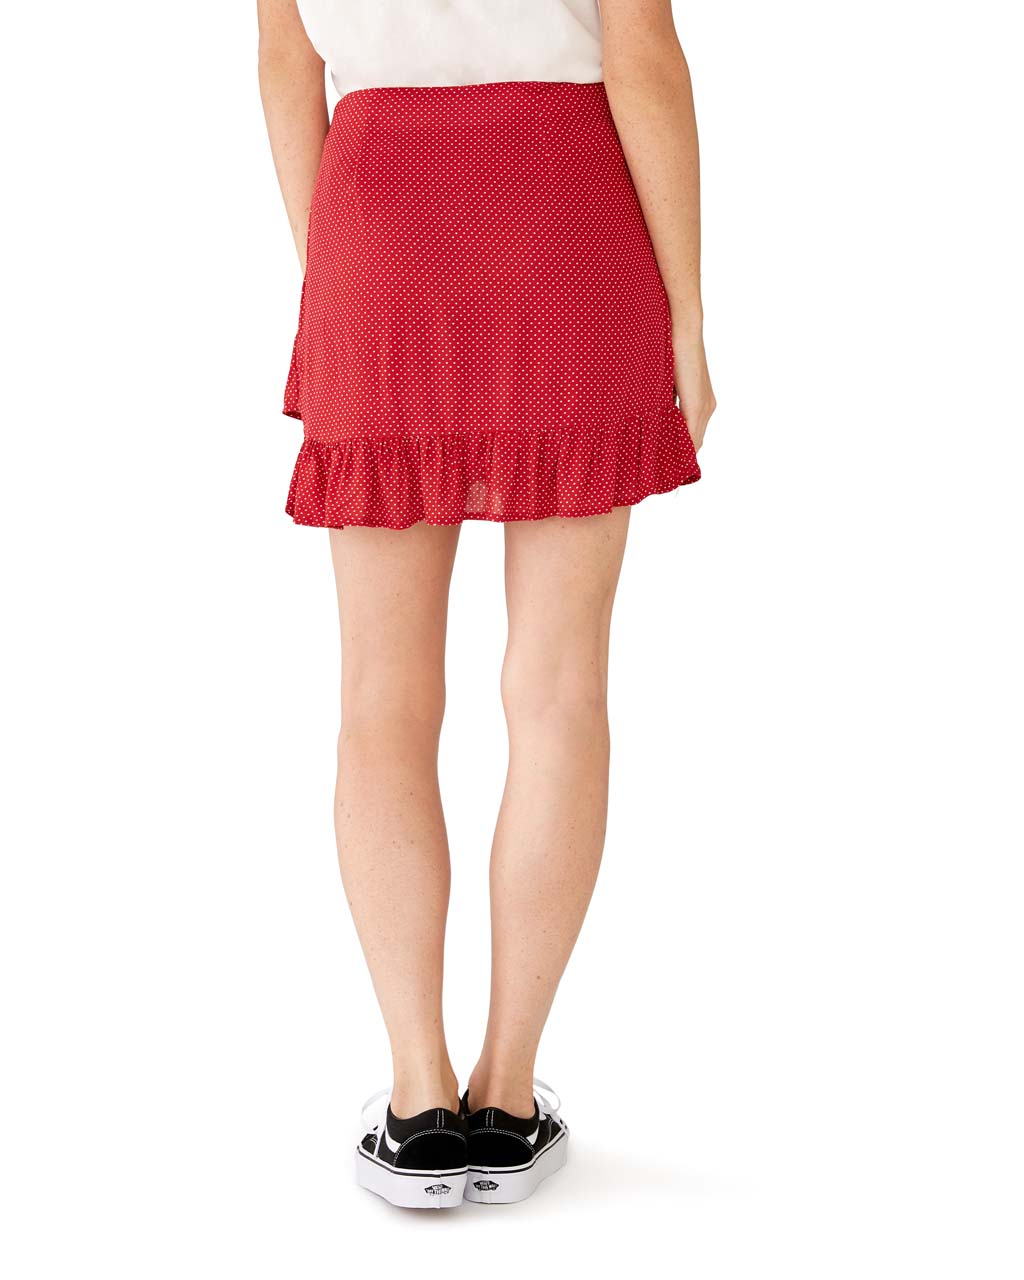 Back view of red skirt with small white dots and ruffled hem